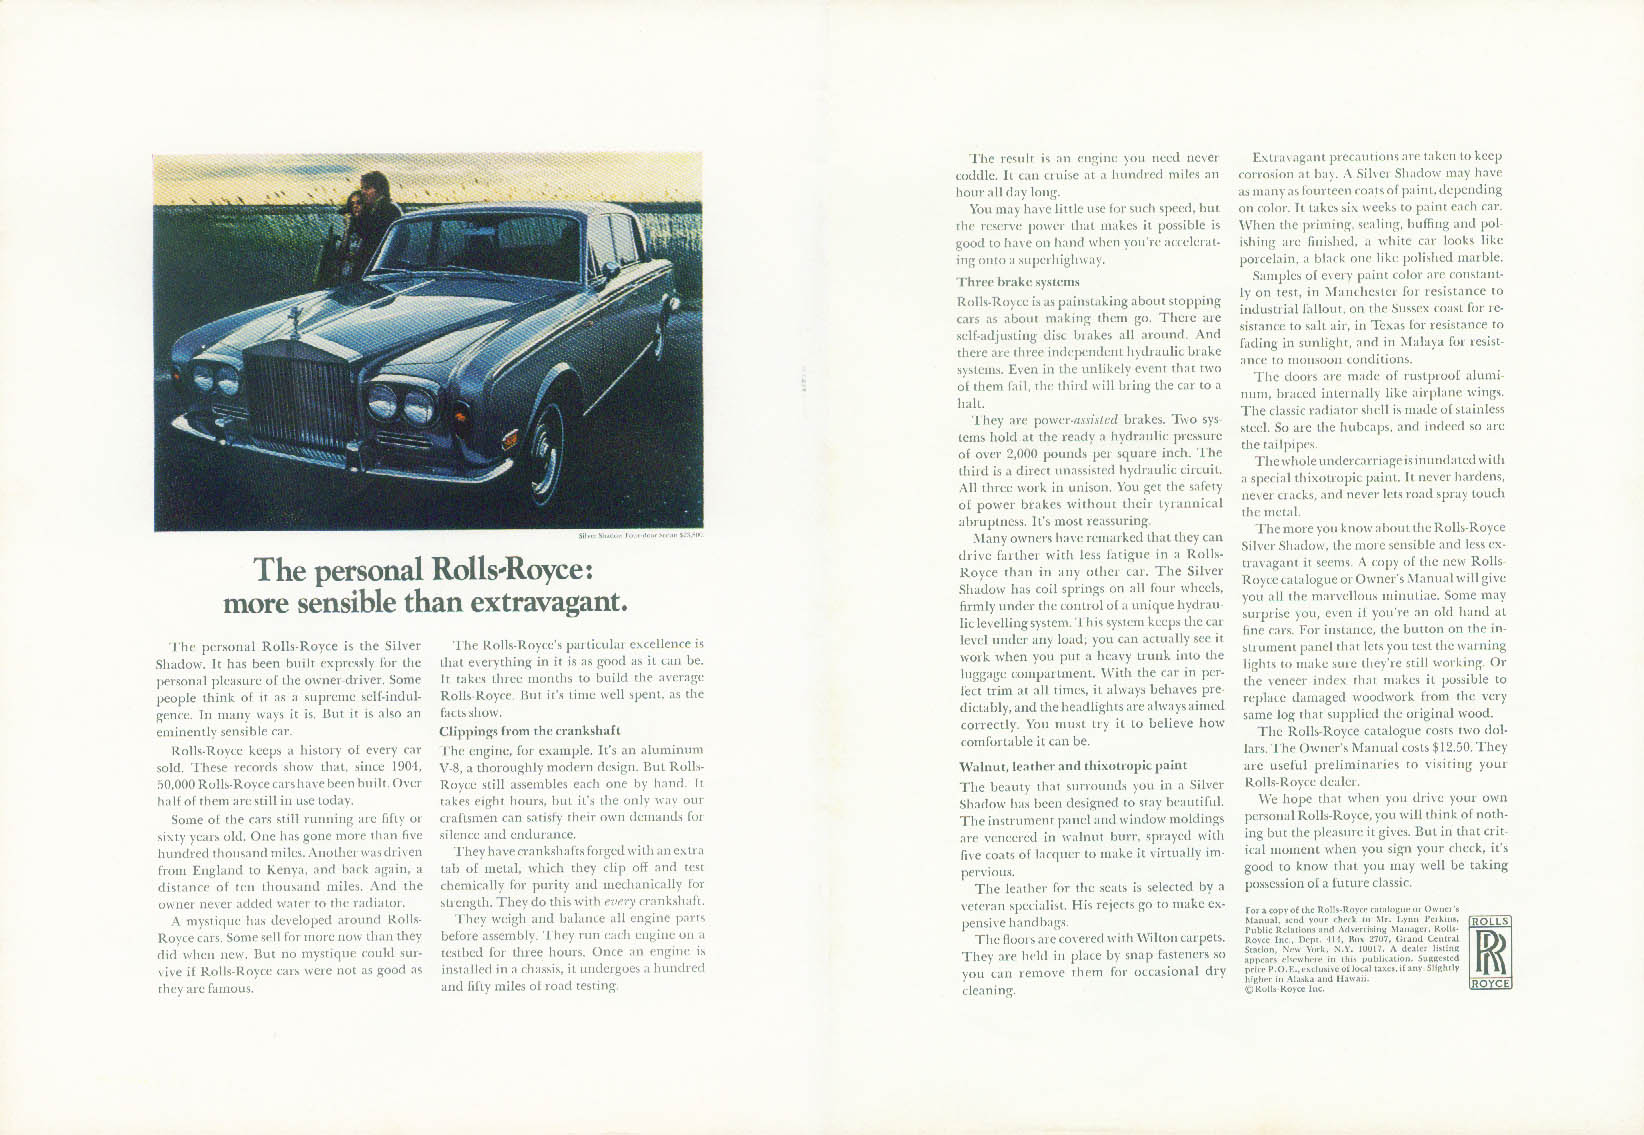 Image for The personal Rolls-Royce: more sensible than extravagant ad 1971